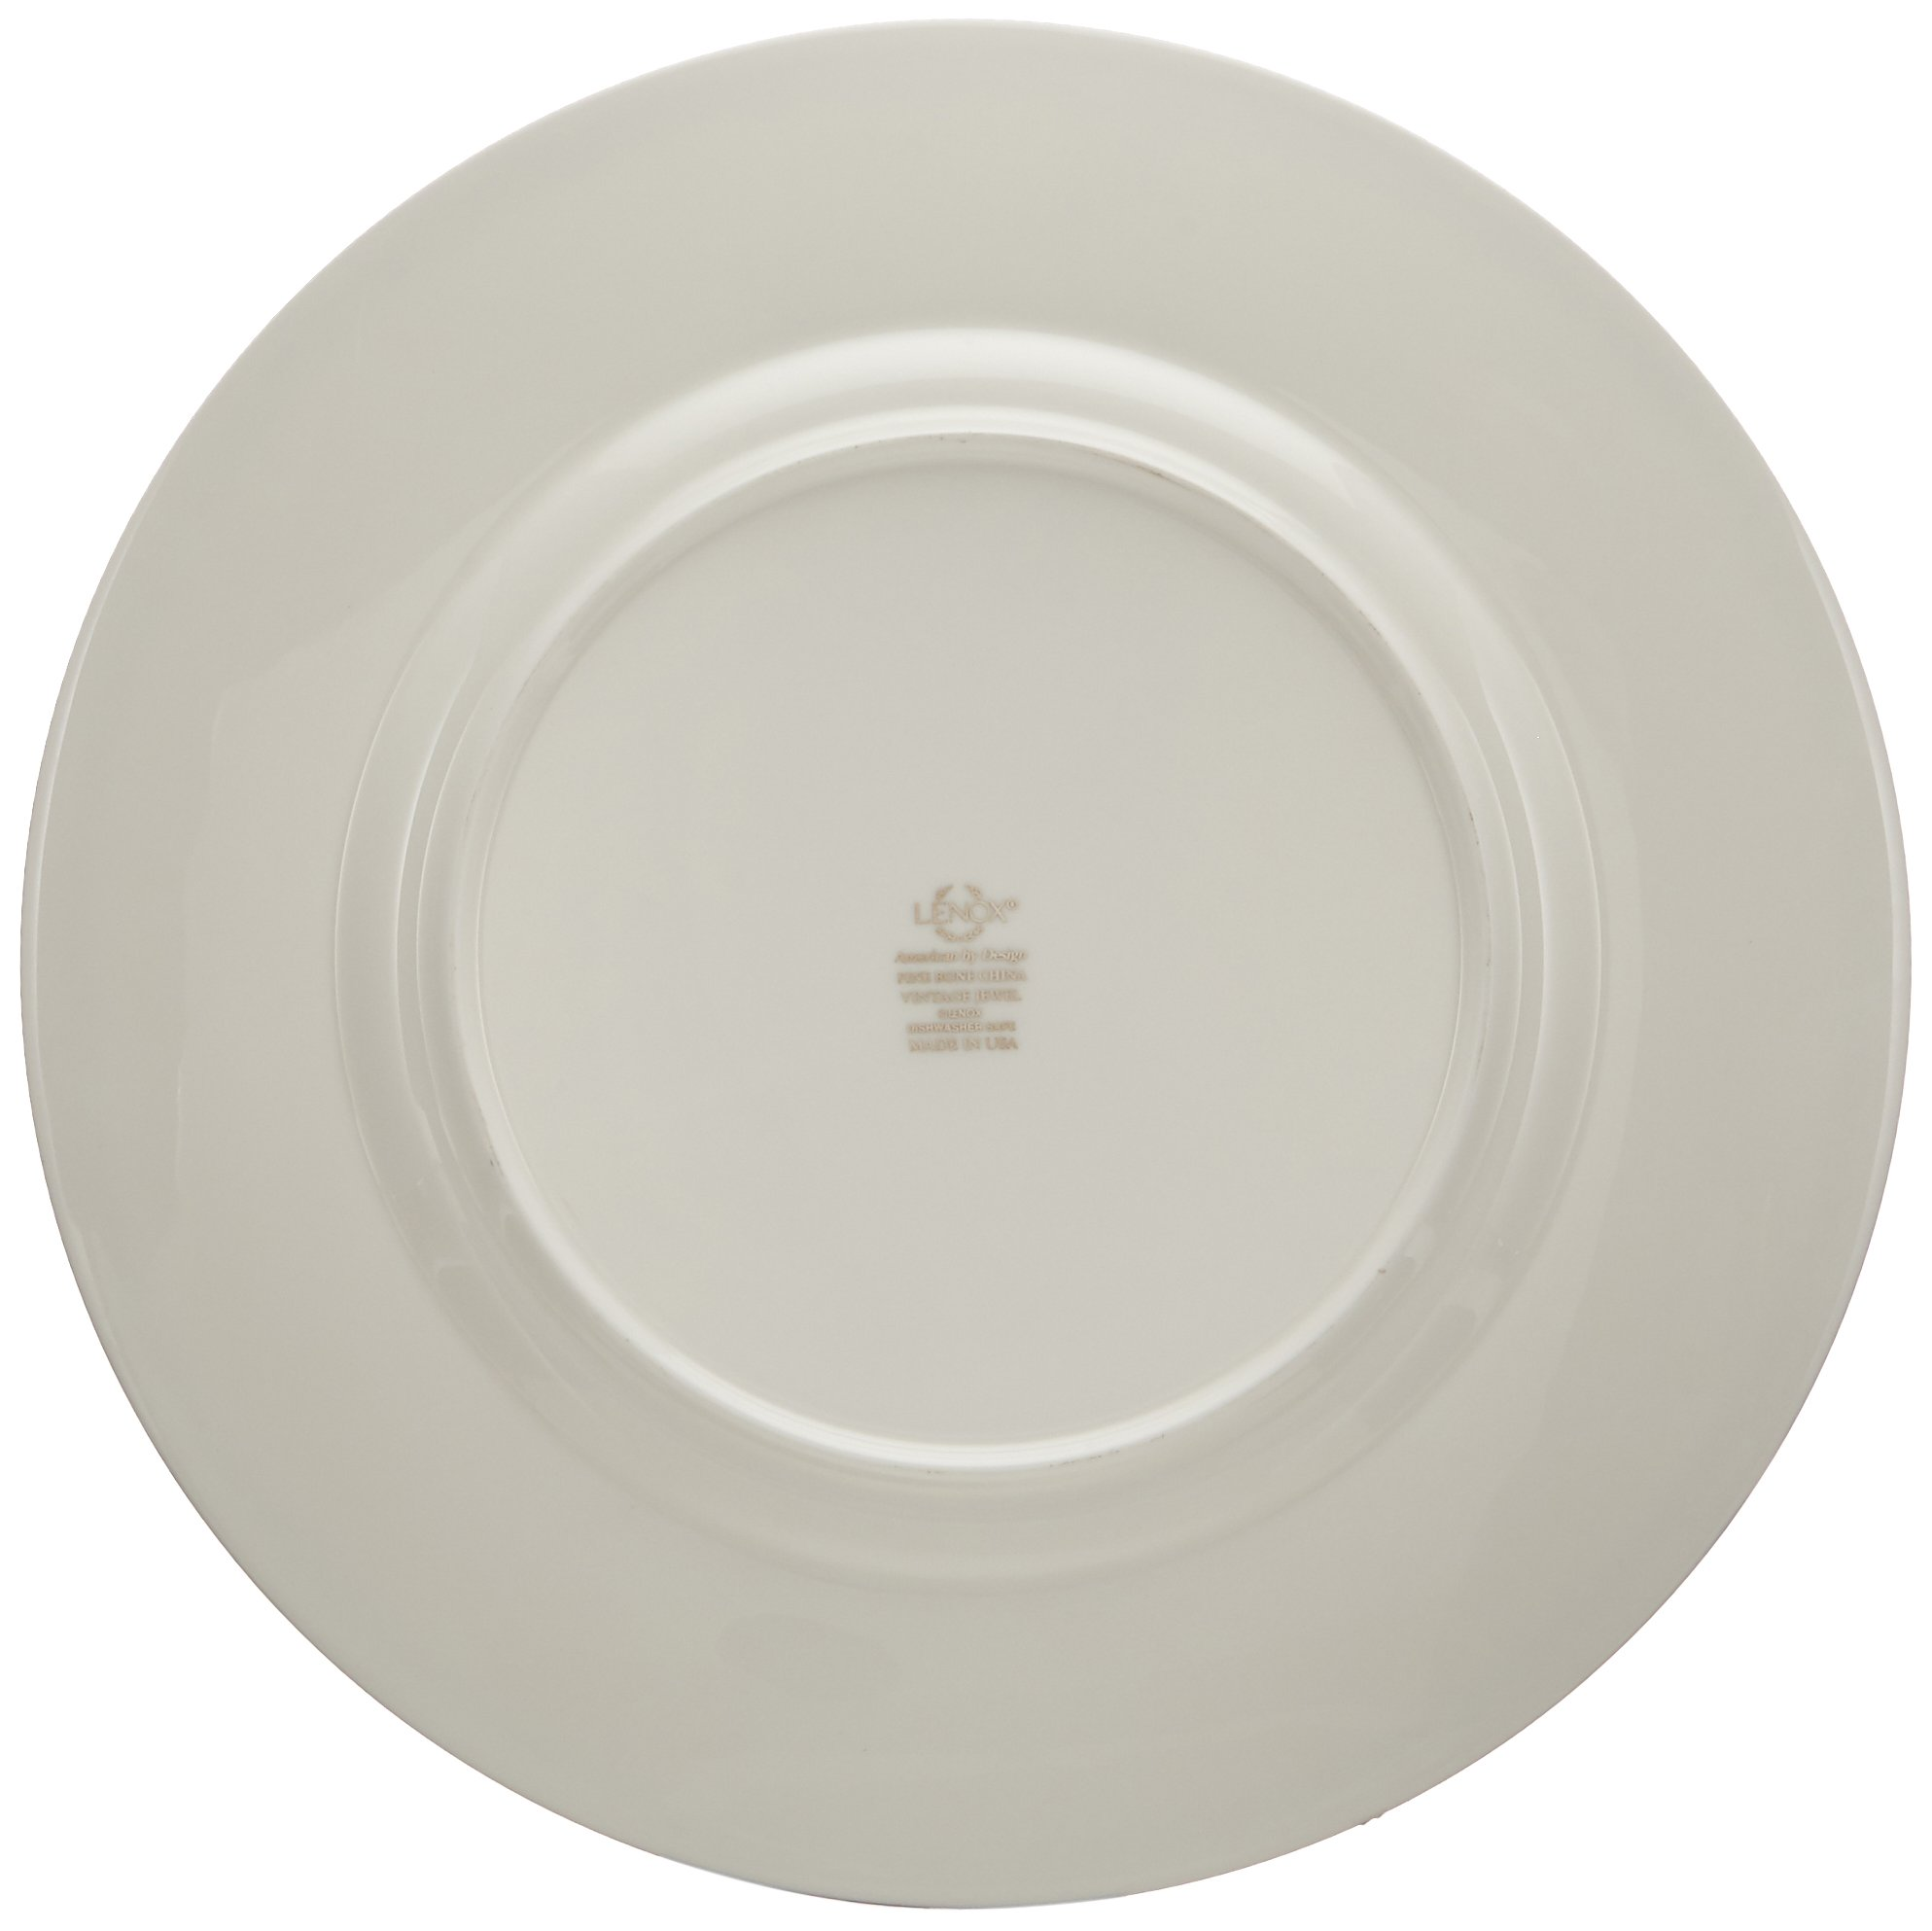 Lenox Vintage Jewel Platinum-Banded Bone China 5-Piece Place Setting, Service for 1 by Lenox (Image #8)